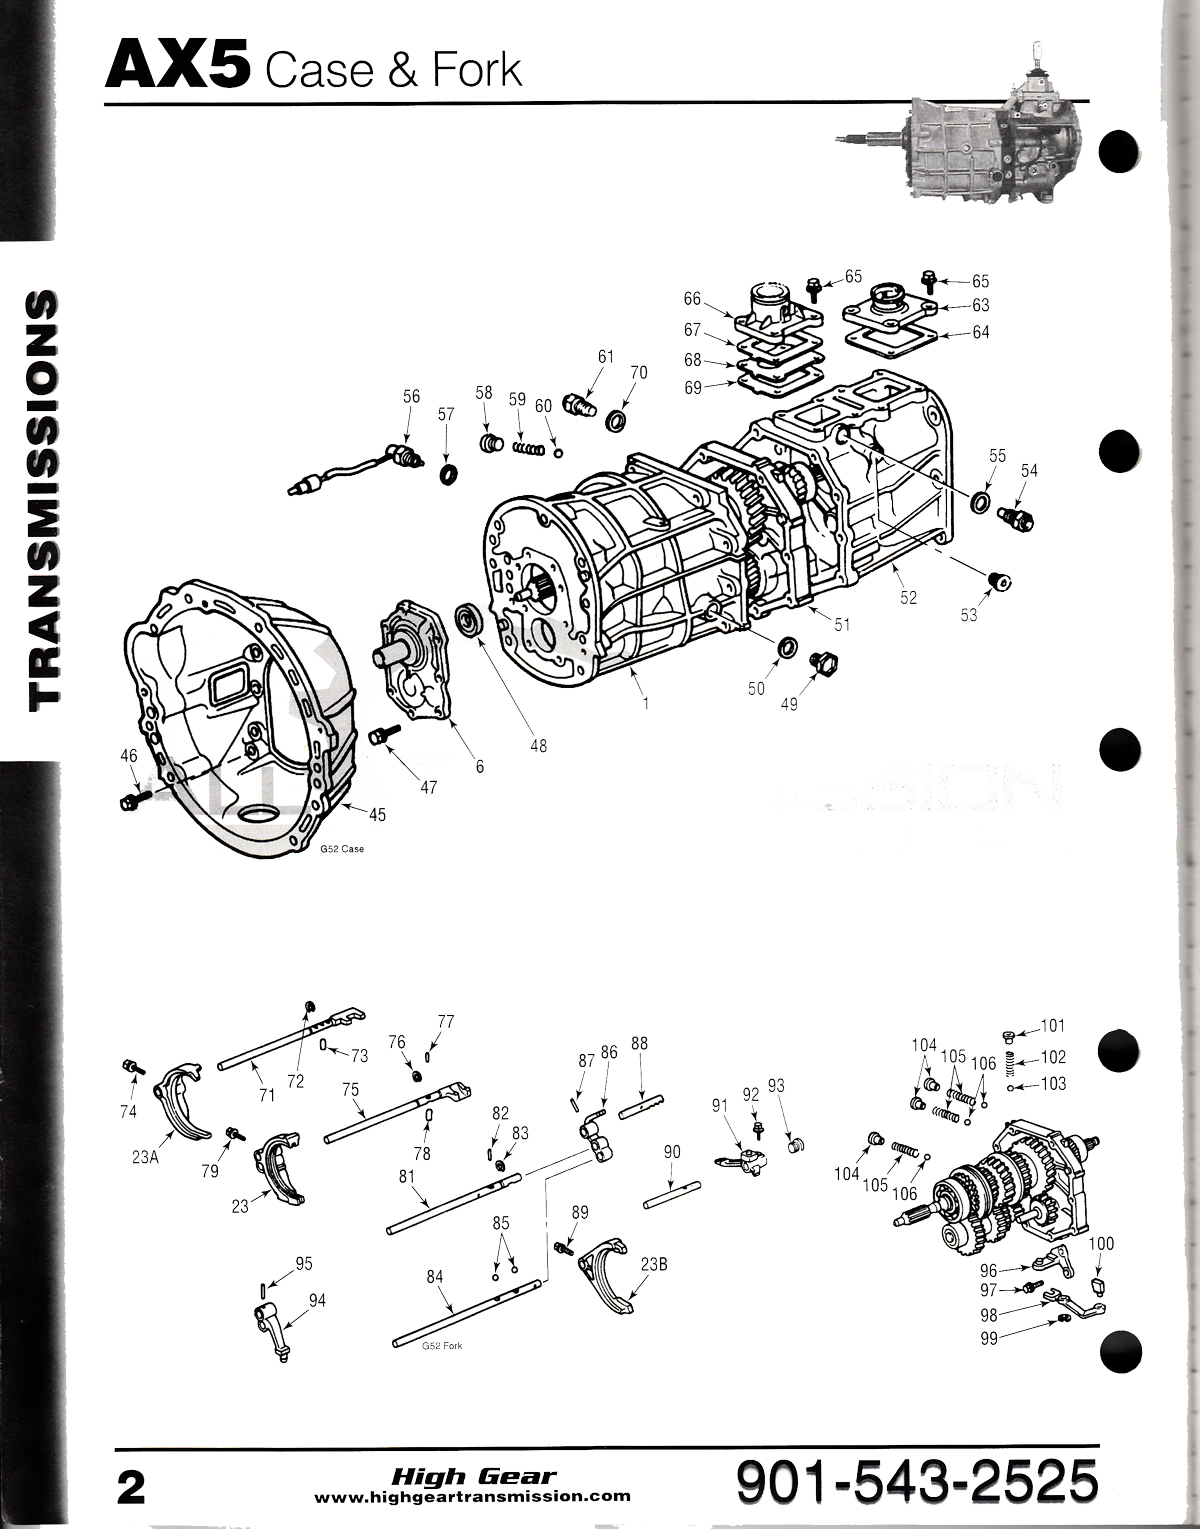 [DIAGRAM_38IS]  Jeep Wrangler Automatic Transmission Diagram jeep ax15 transmission ax15 transmission  diagram - pump.123vielgeld.de | 94 Wrangler Automatic Transmission Wiring Diagram |  | Wires